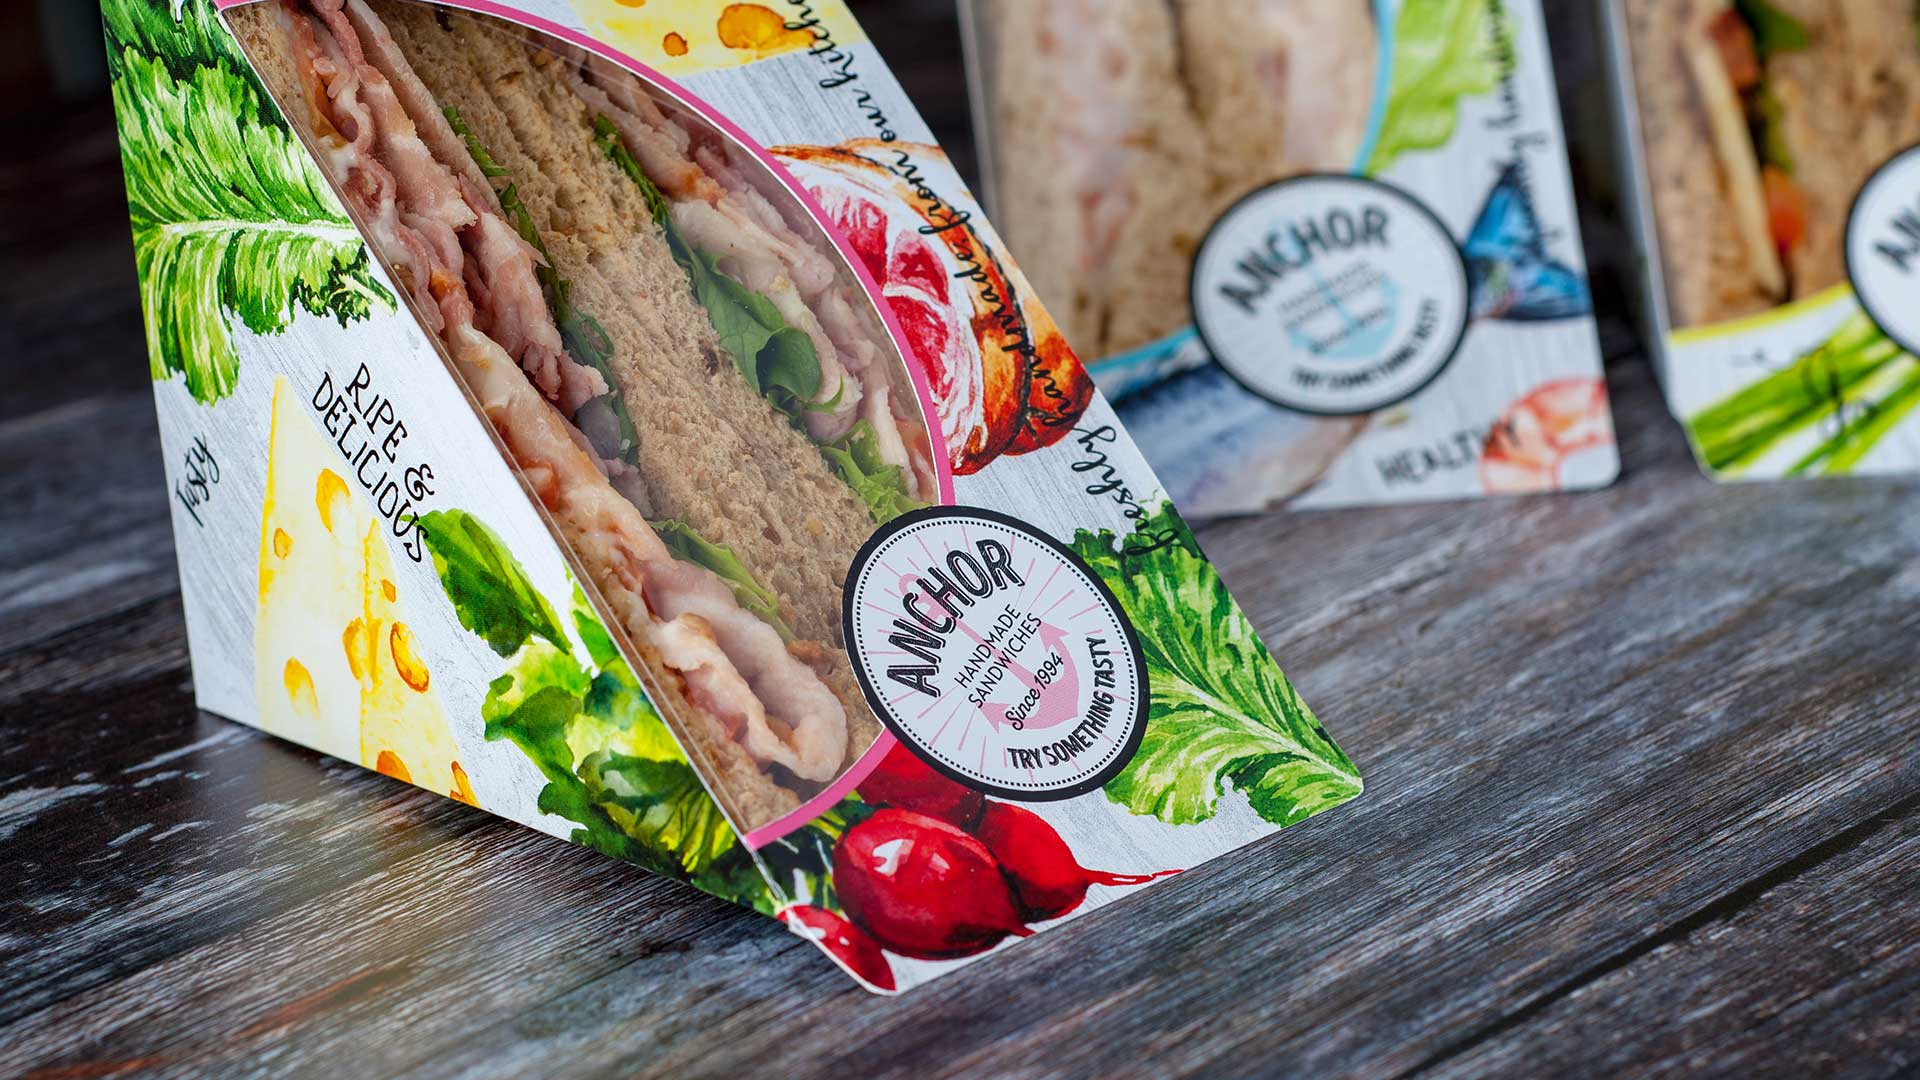 sandwich packaging for Anchor foods - created by packaging designers - Flipflop Design